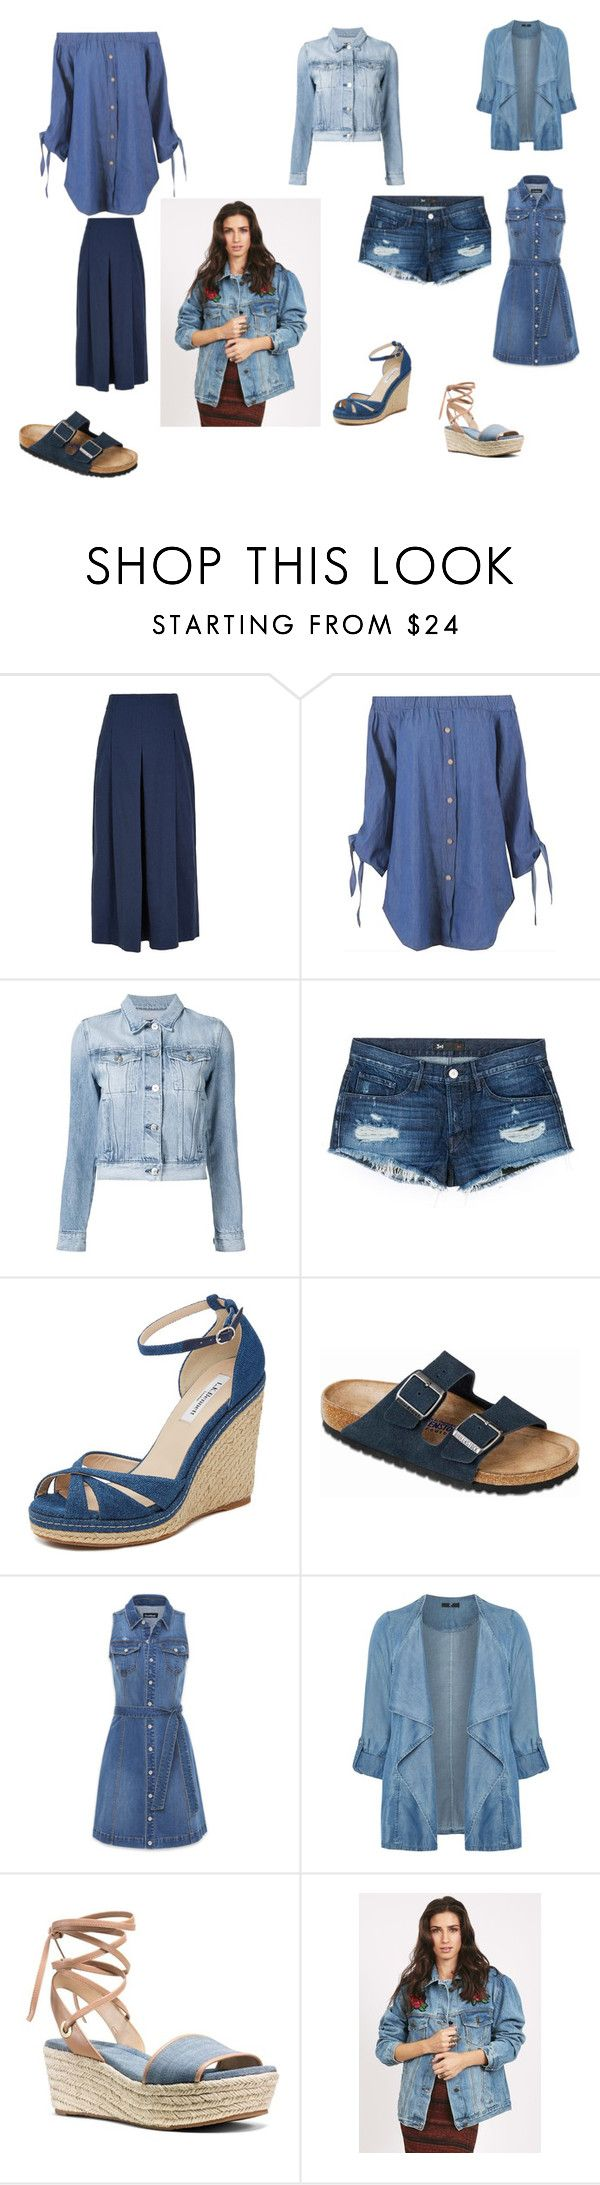 """""""Denim"""" by amgbenyon ❤ liked on Polyvore featuring TIBI, 3x1, L.K.Bennett, Birkenstock, Bebe, Evans, MICHAEL Michael Kors and plus size clothing"""